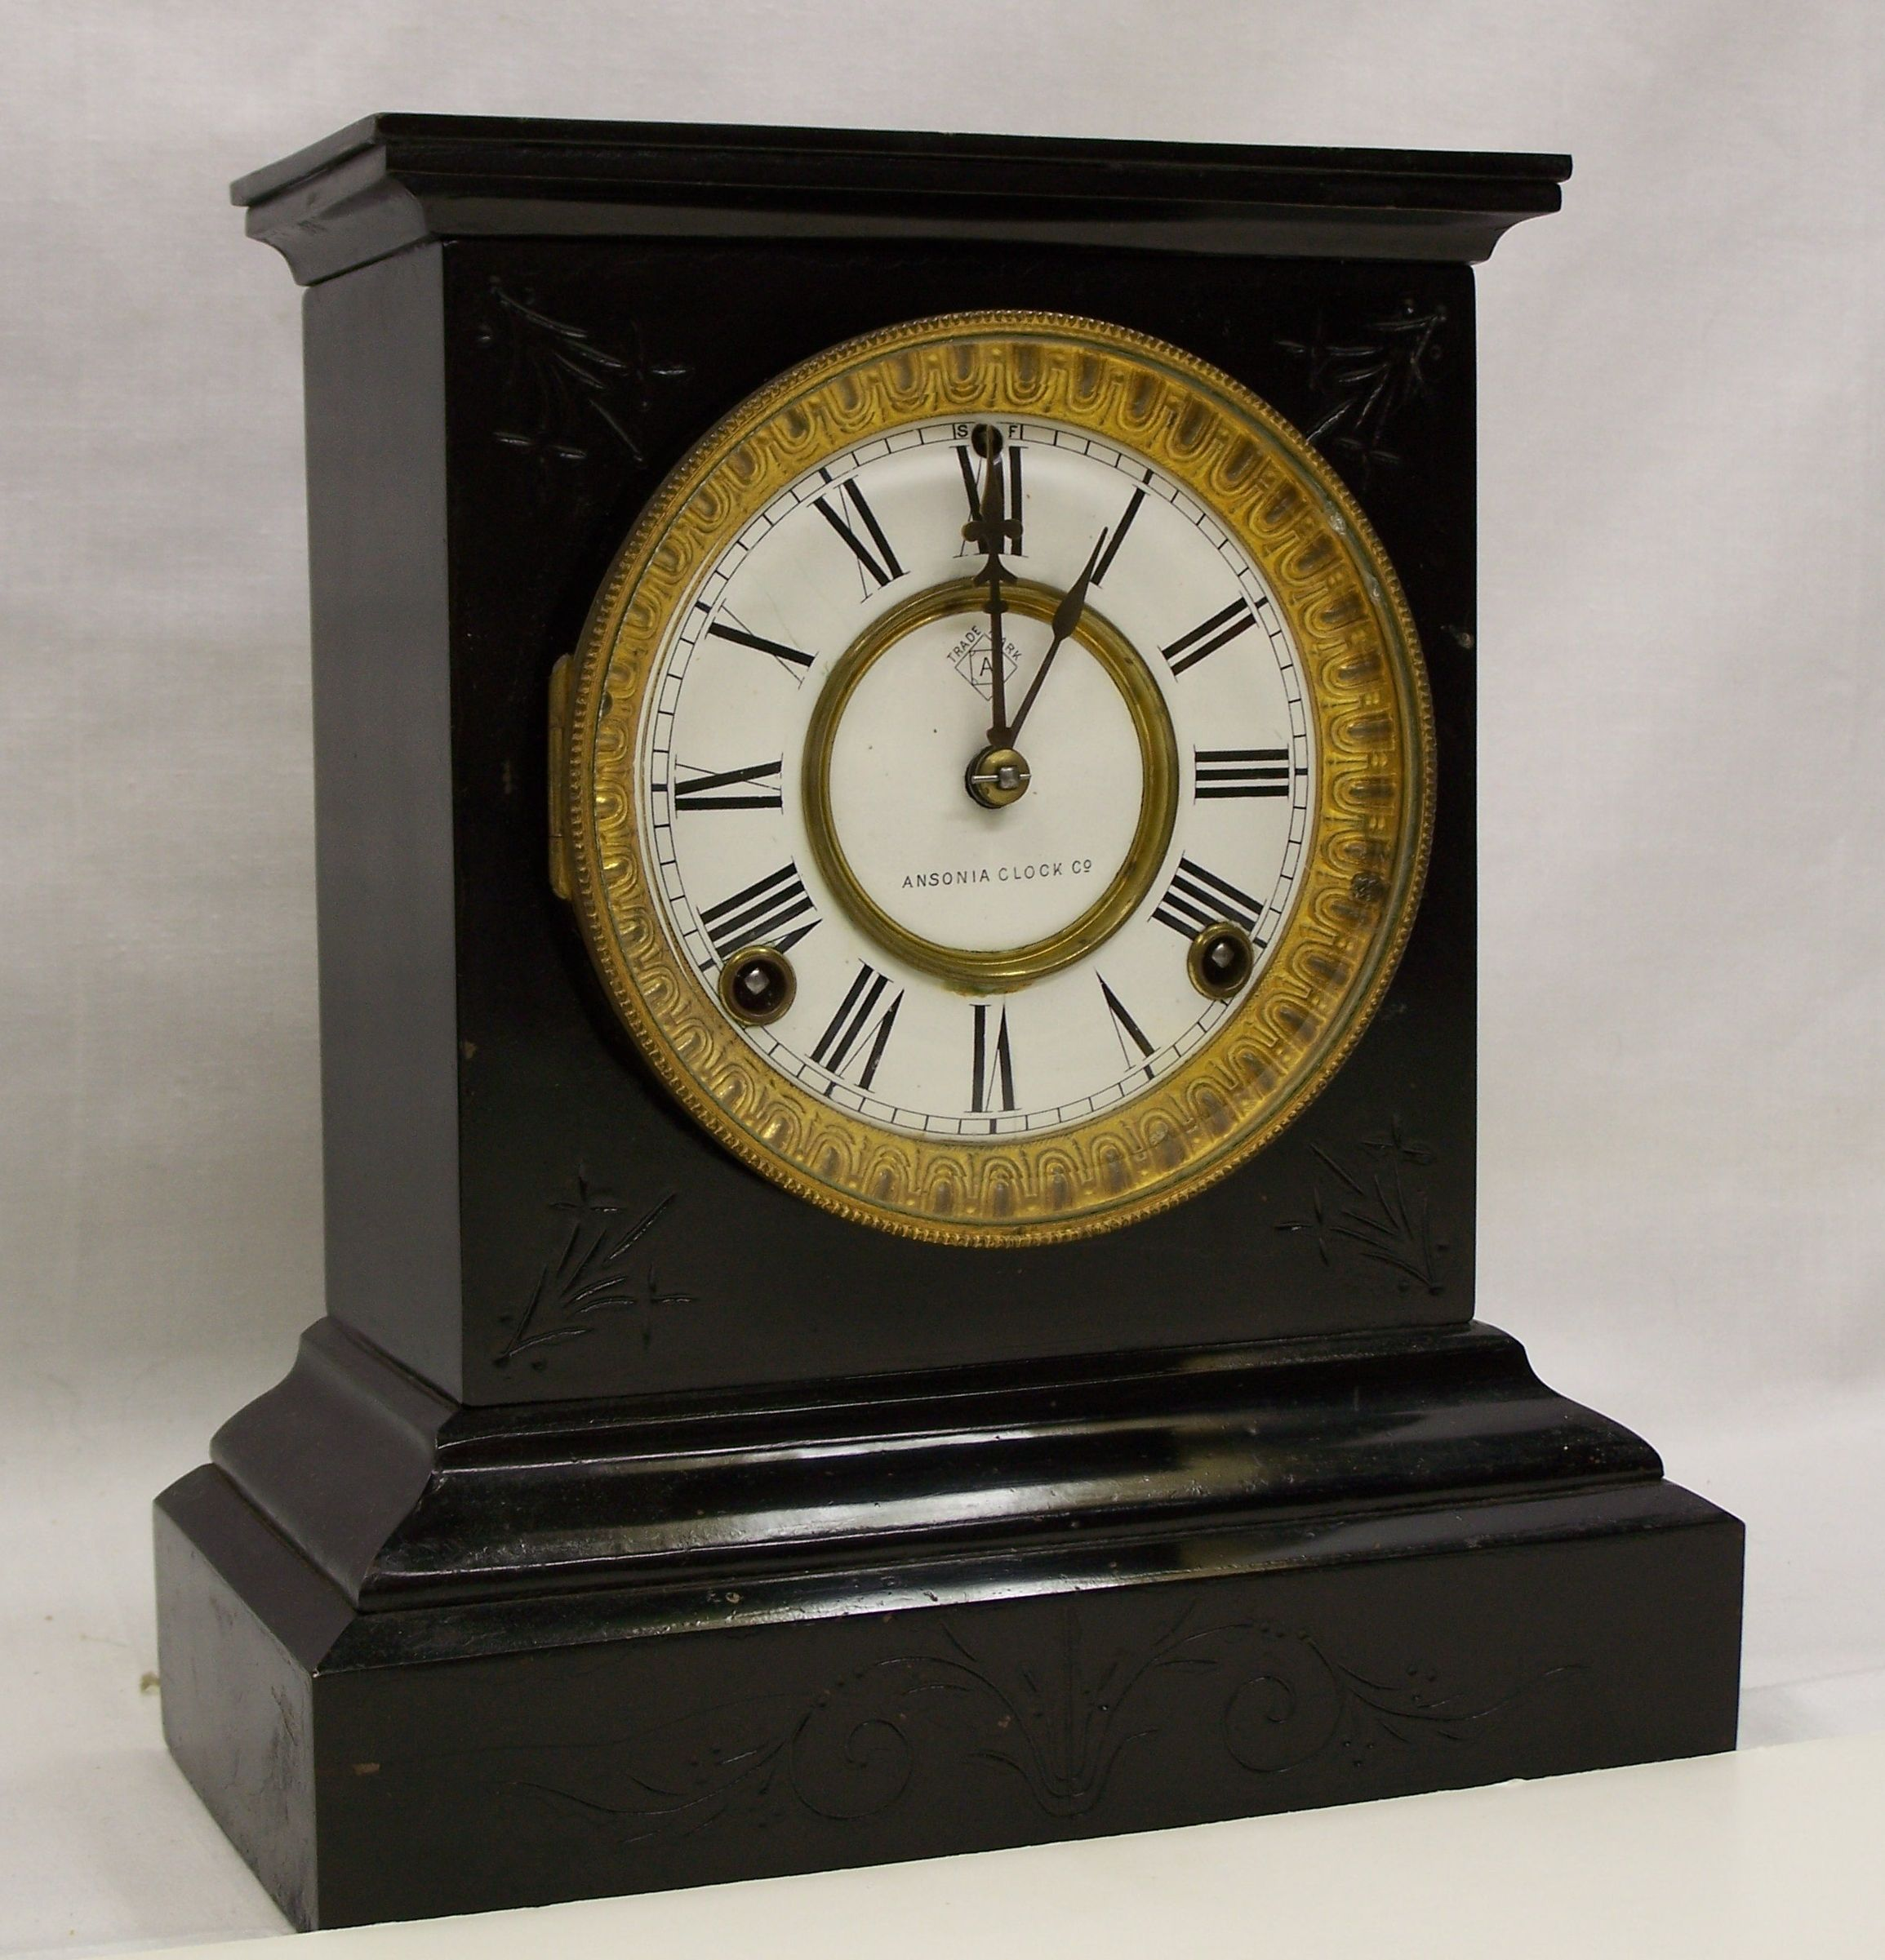 Bulova Mantel Clock | Mantel Clocks | Walmart Mantel Clocks